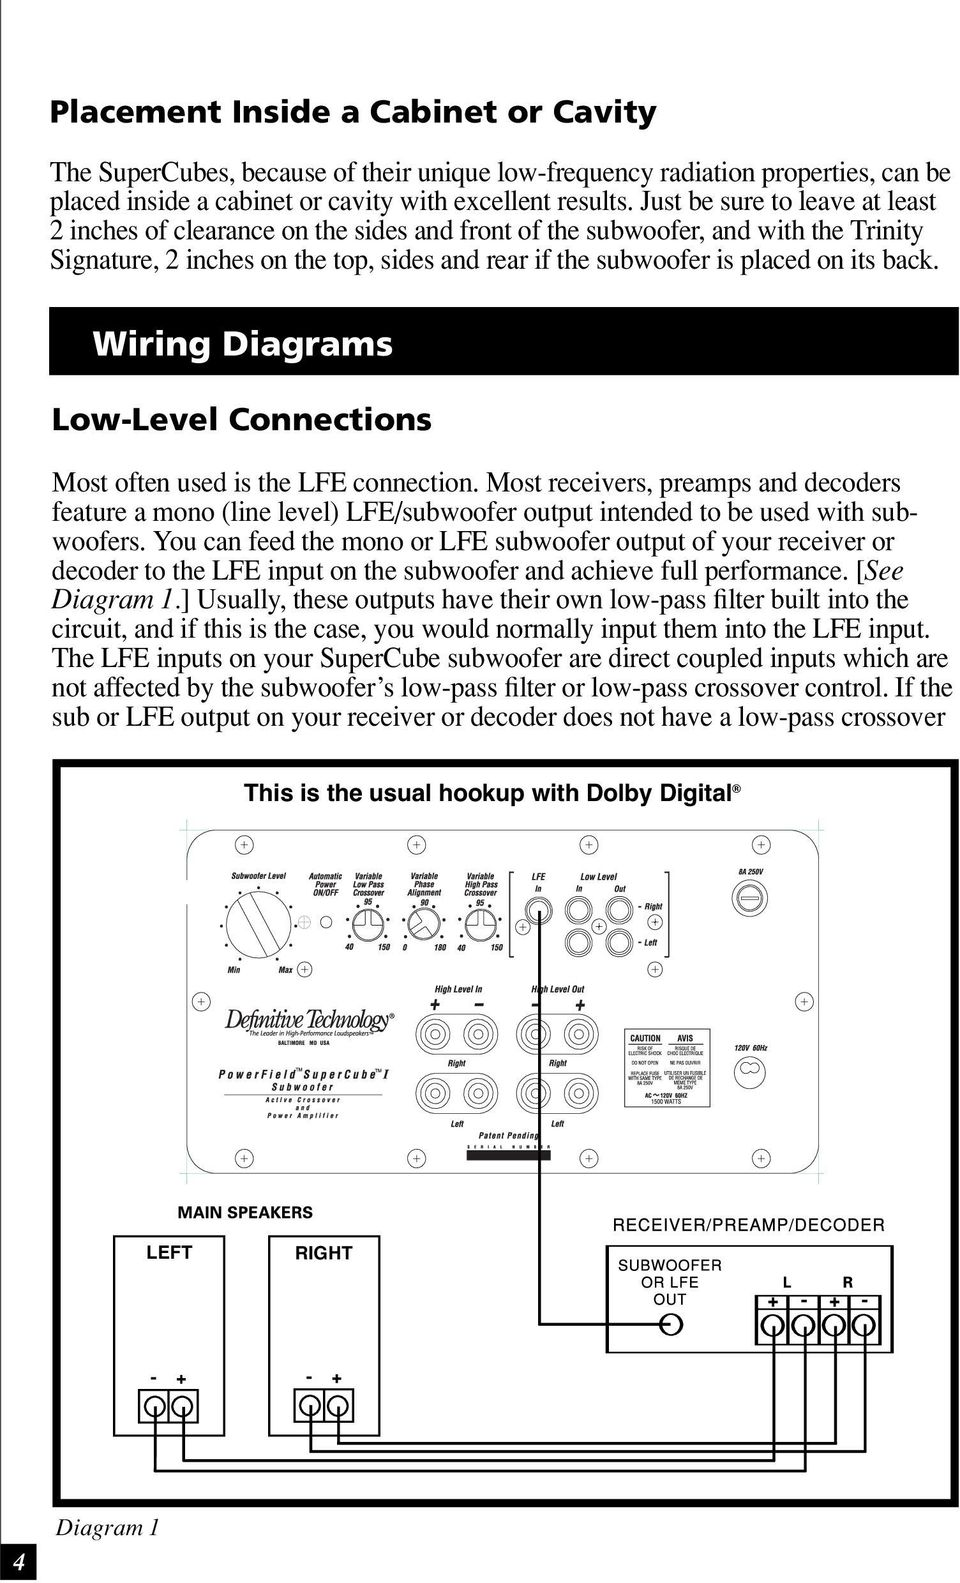 Wiring Diagrams Low-Level Connections Most often used is the LFE connection.